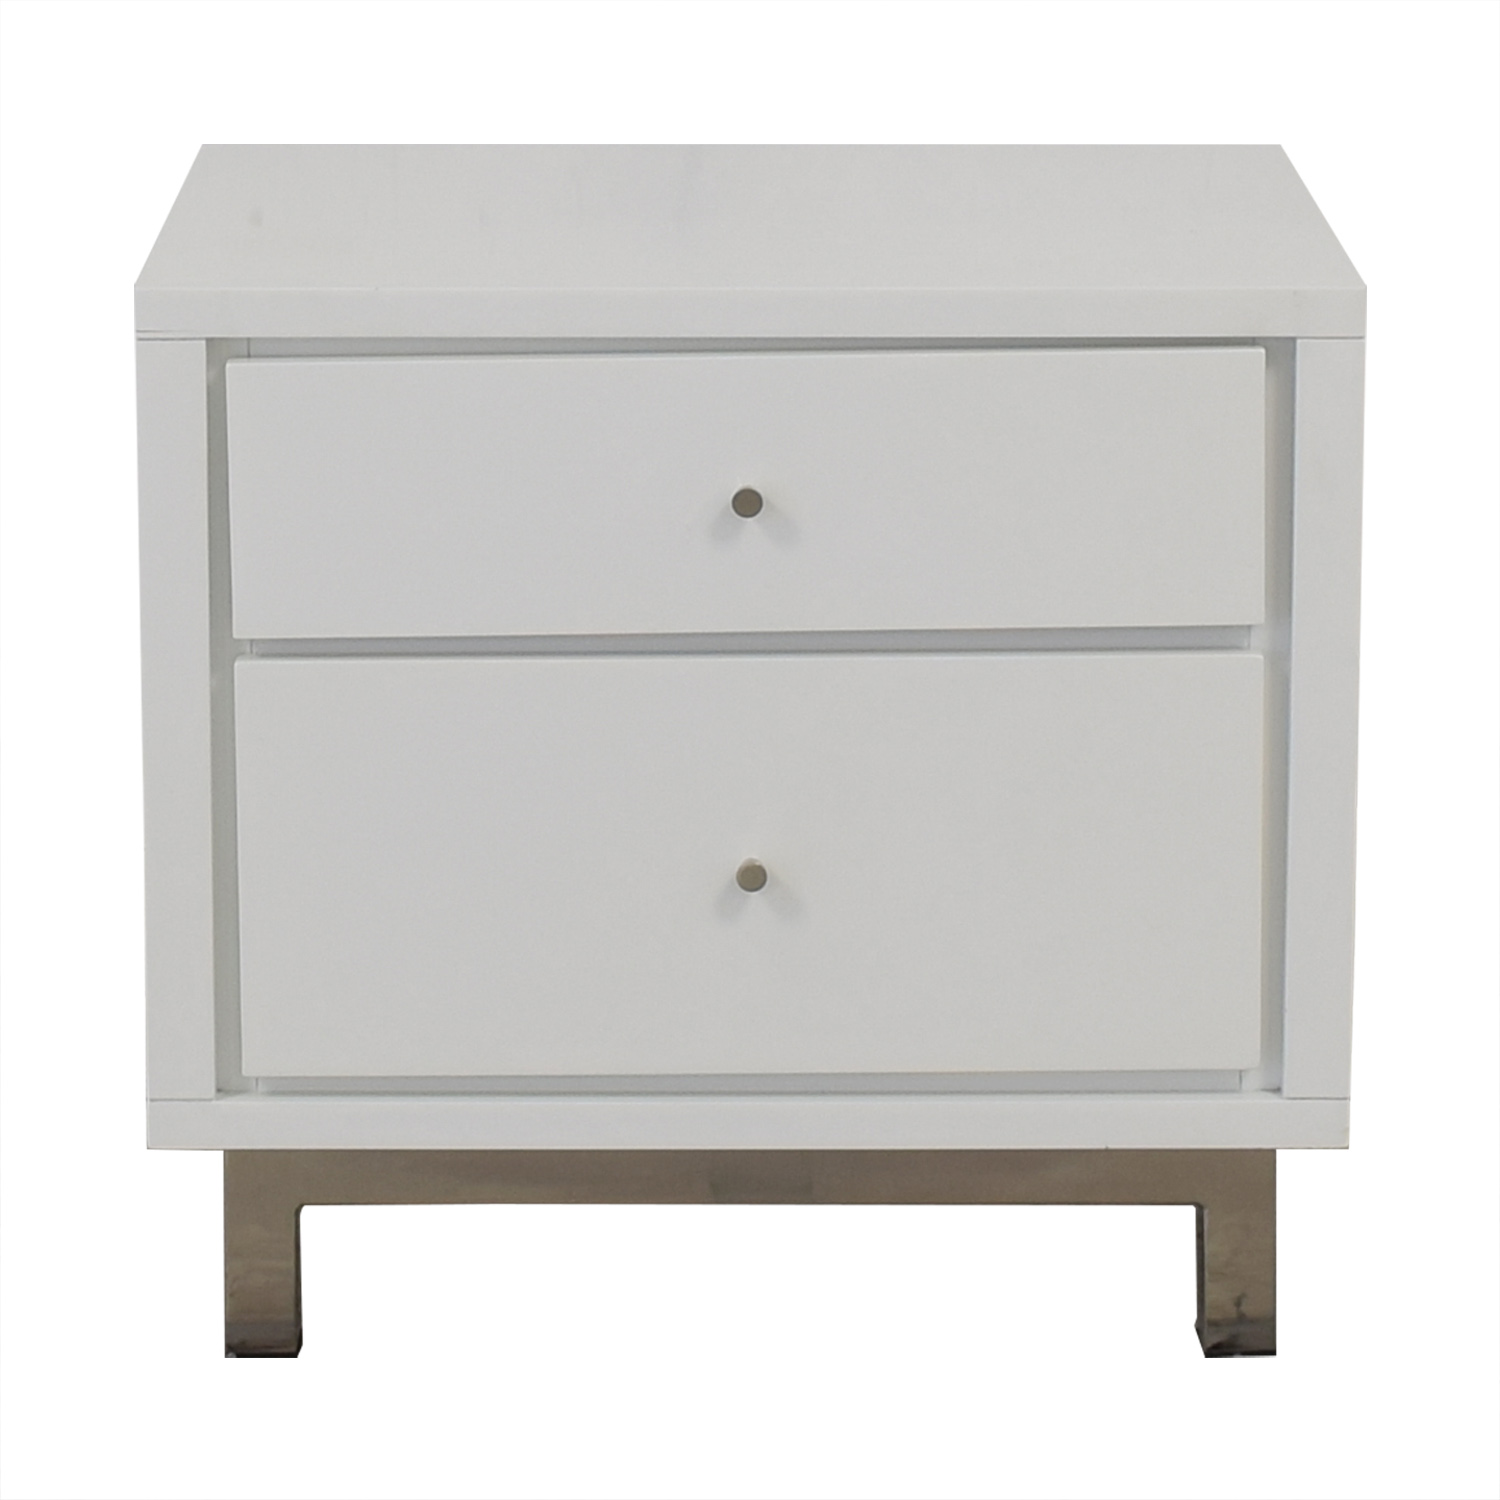 Crate & Barrel Crate & Barrel Bedside Table price